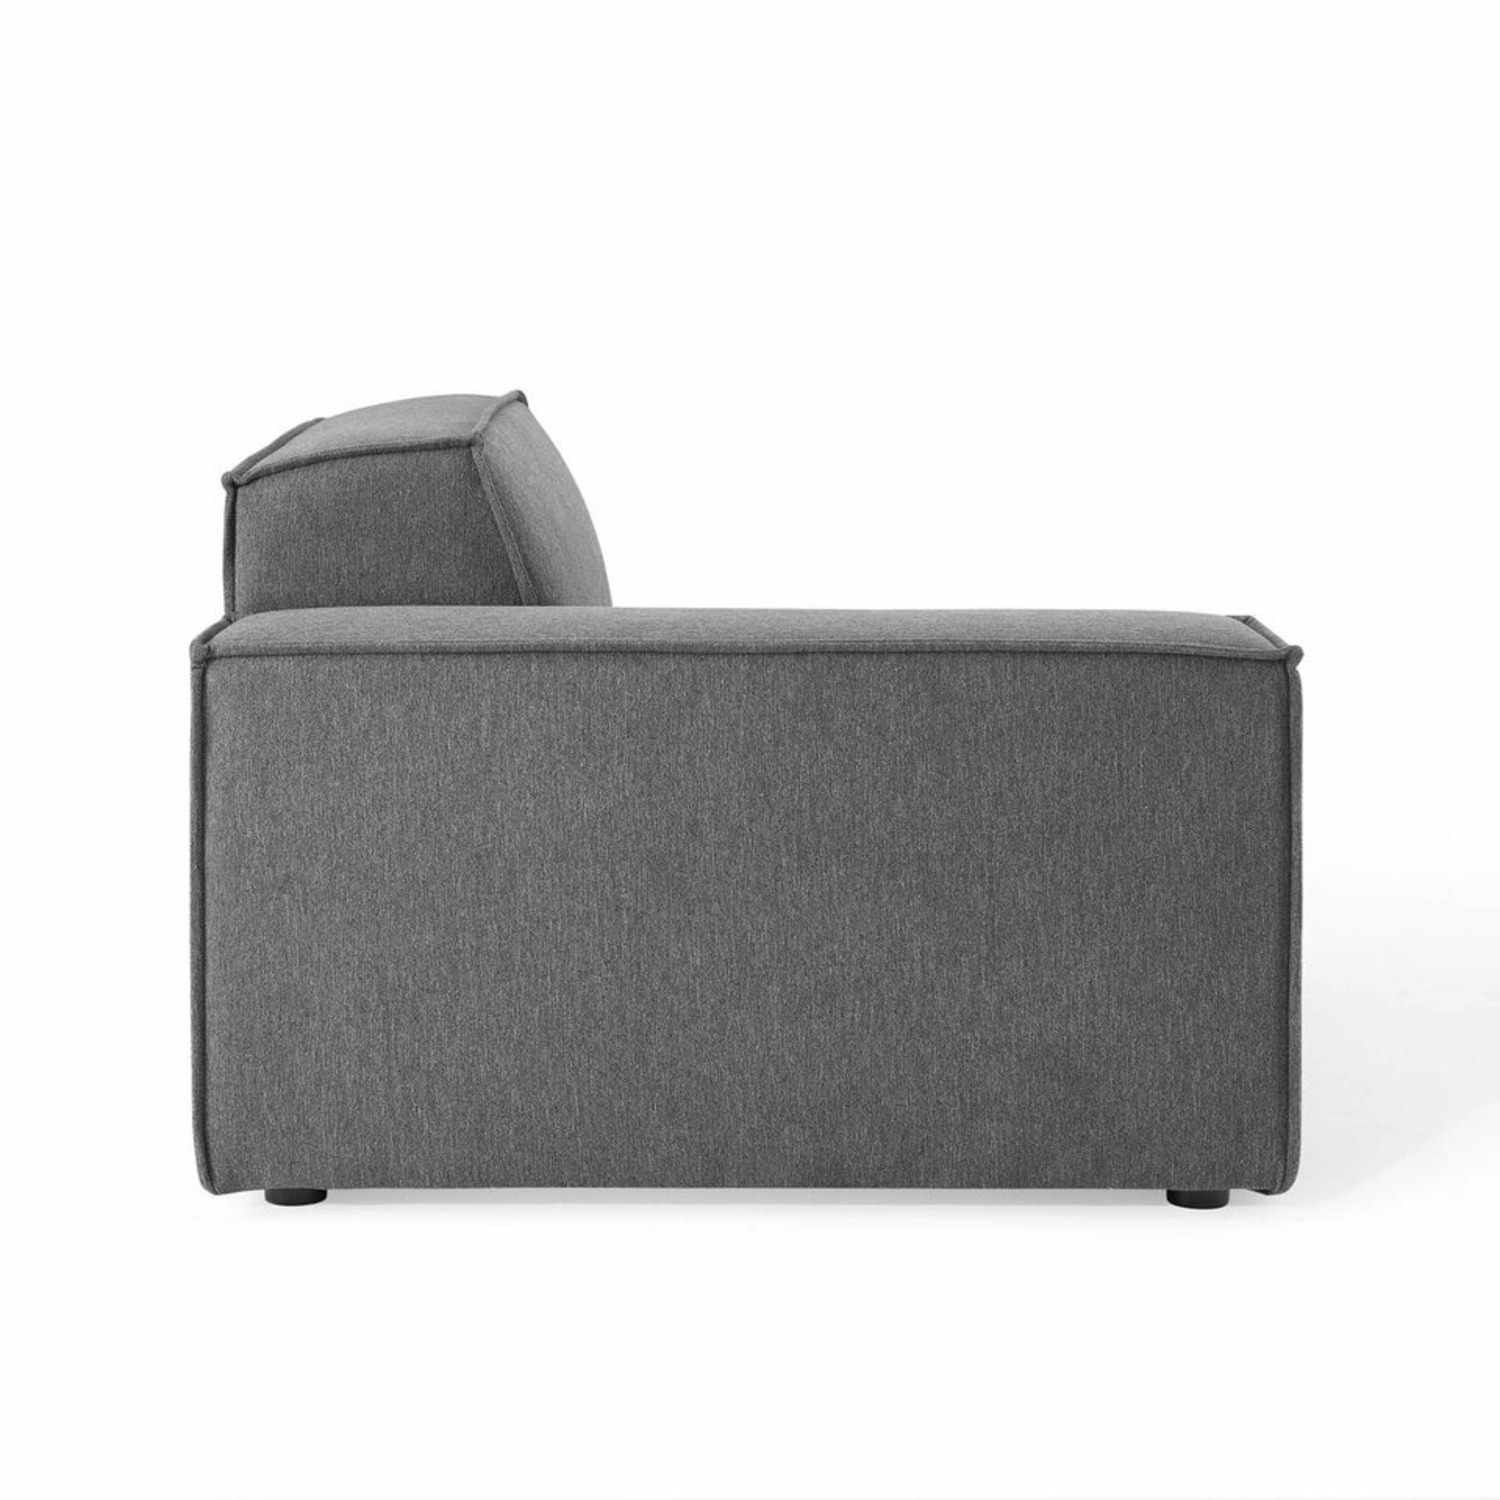 8-Piece Sectional Sofa In Charcoal Fabric Finish - image-4